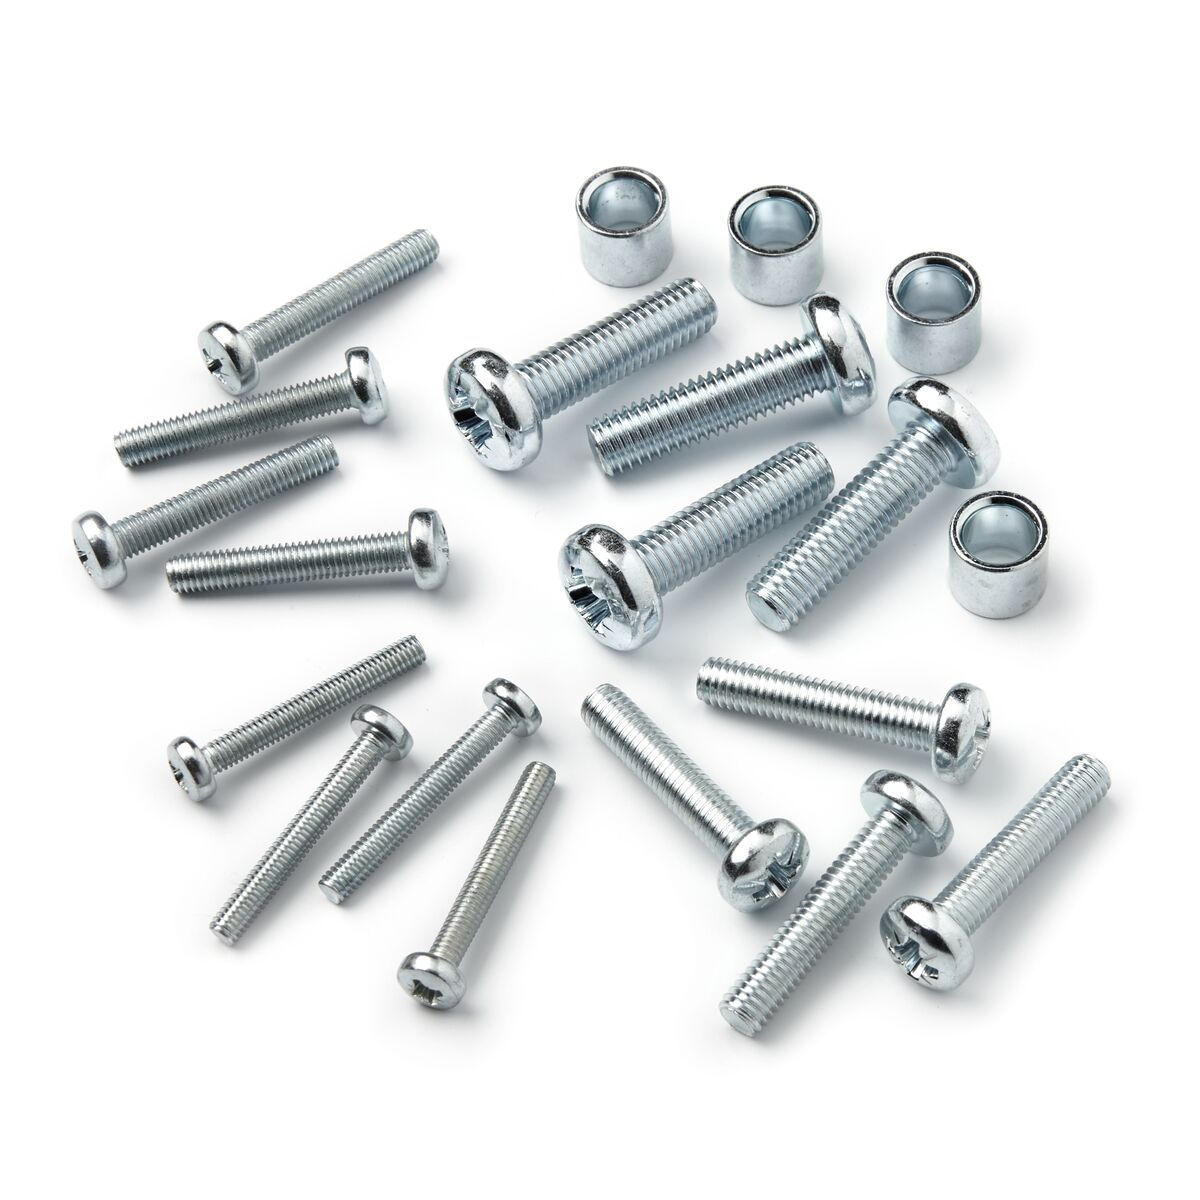 Vogel's Service Kit - Spacers (10 mm), M4-M5-M6-M8 bolts (30 mm) - Detail